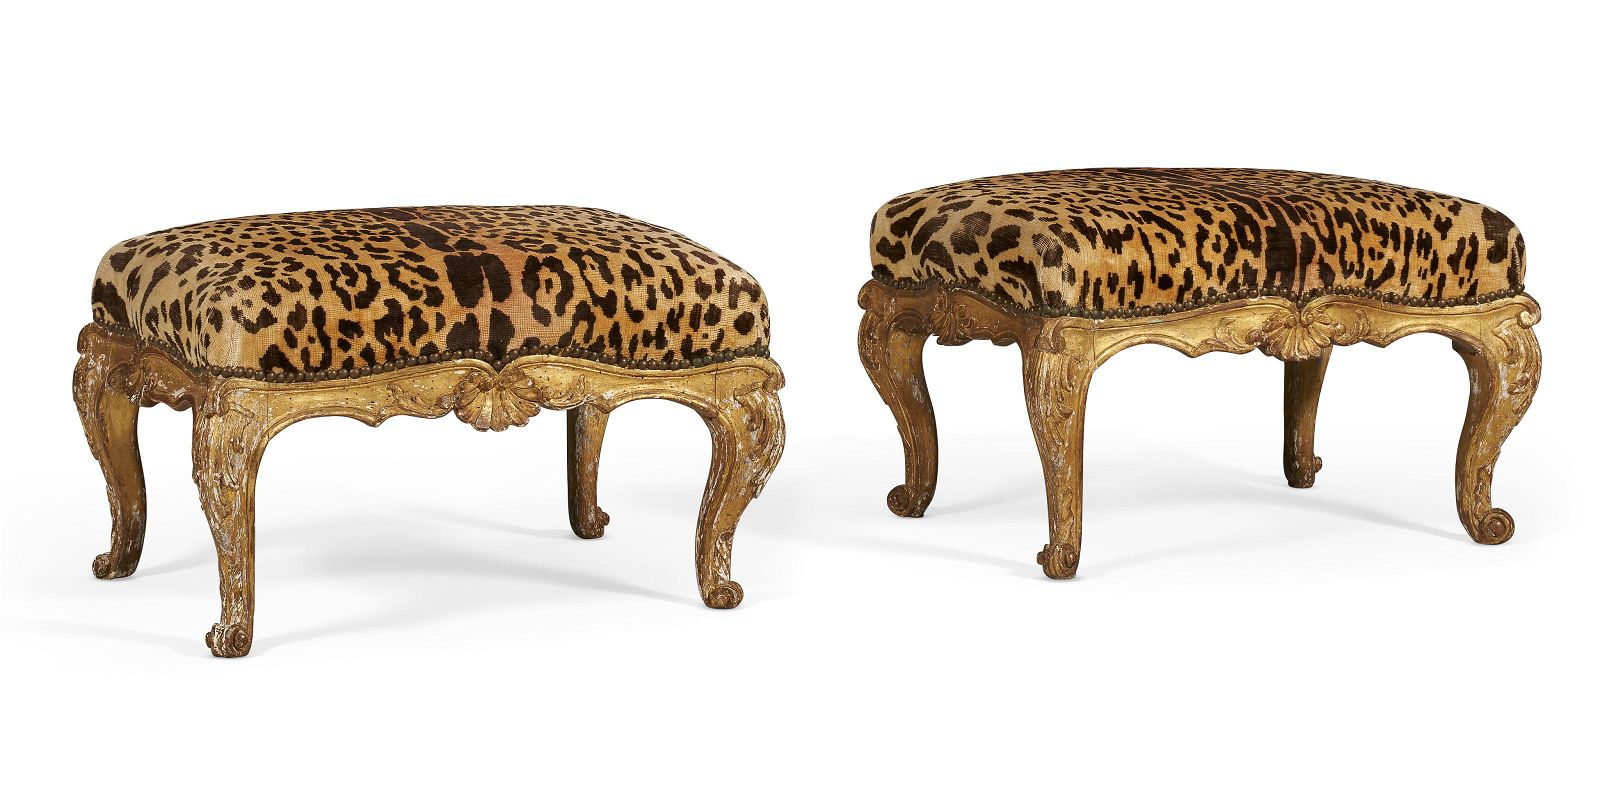 A PAIR OF NORTH ITALIAN GILTWOOD TABOURETS